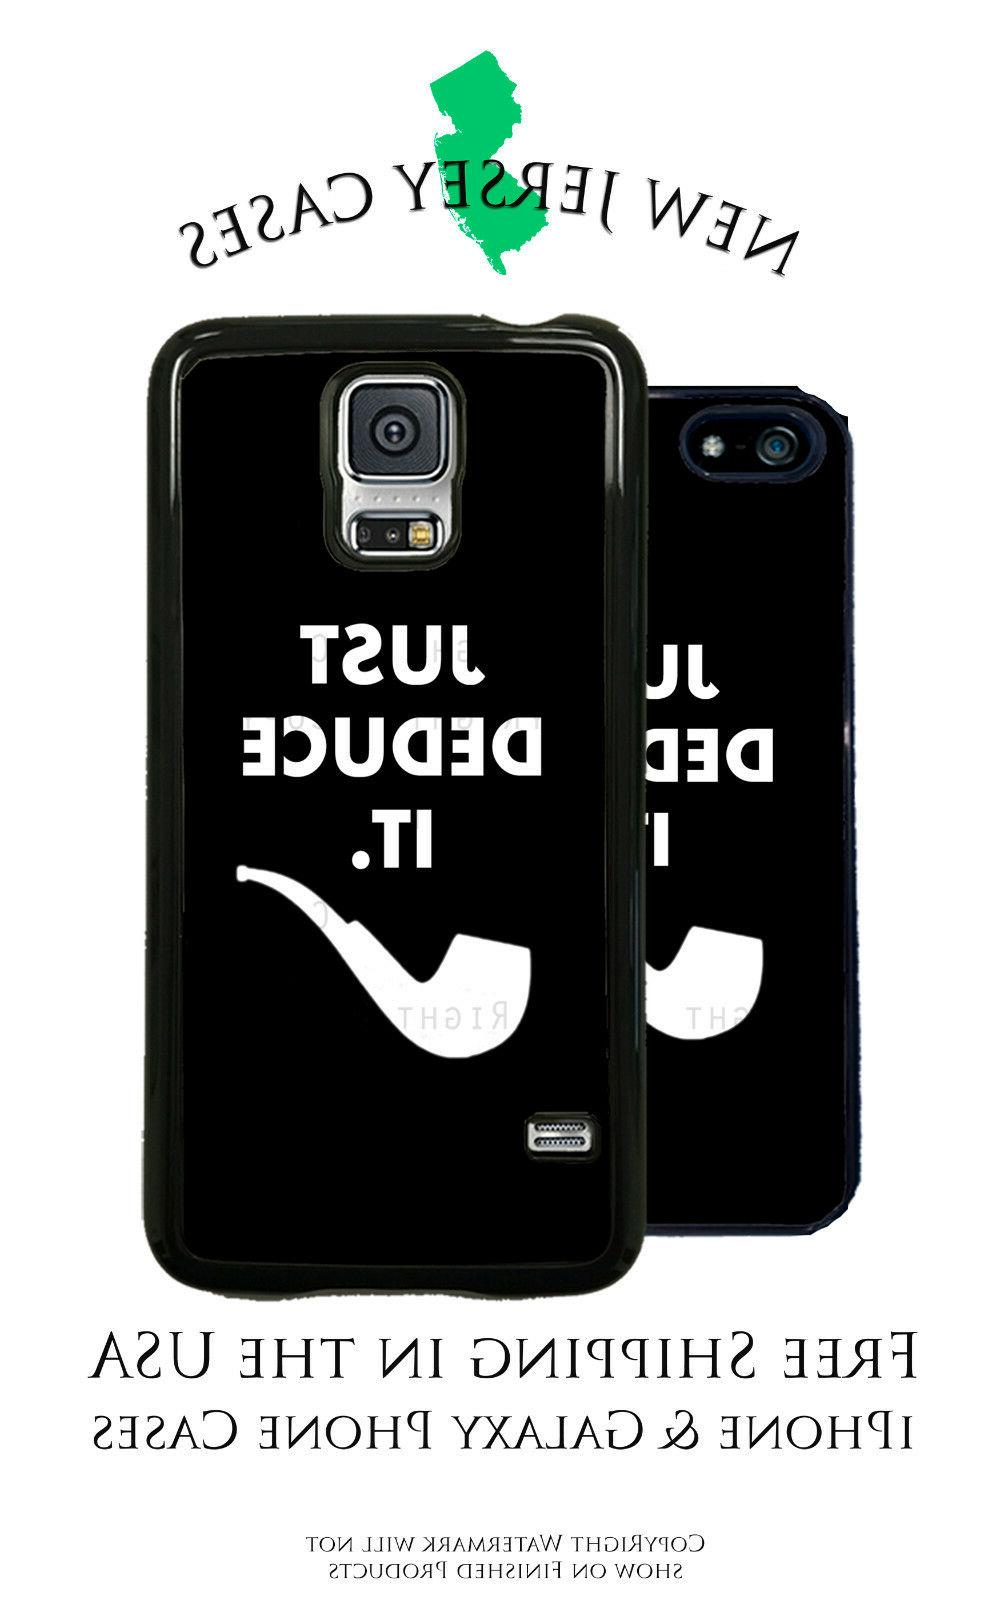 Sherlock Holmes Just Deduce It Phone Case for Apple iPhone,